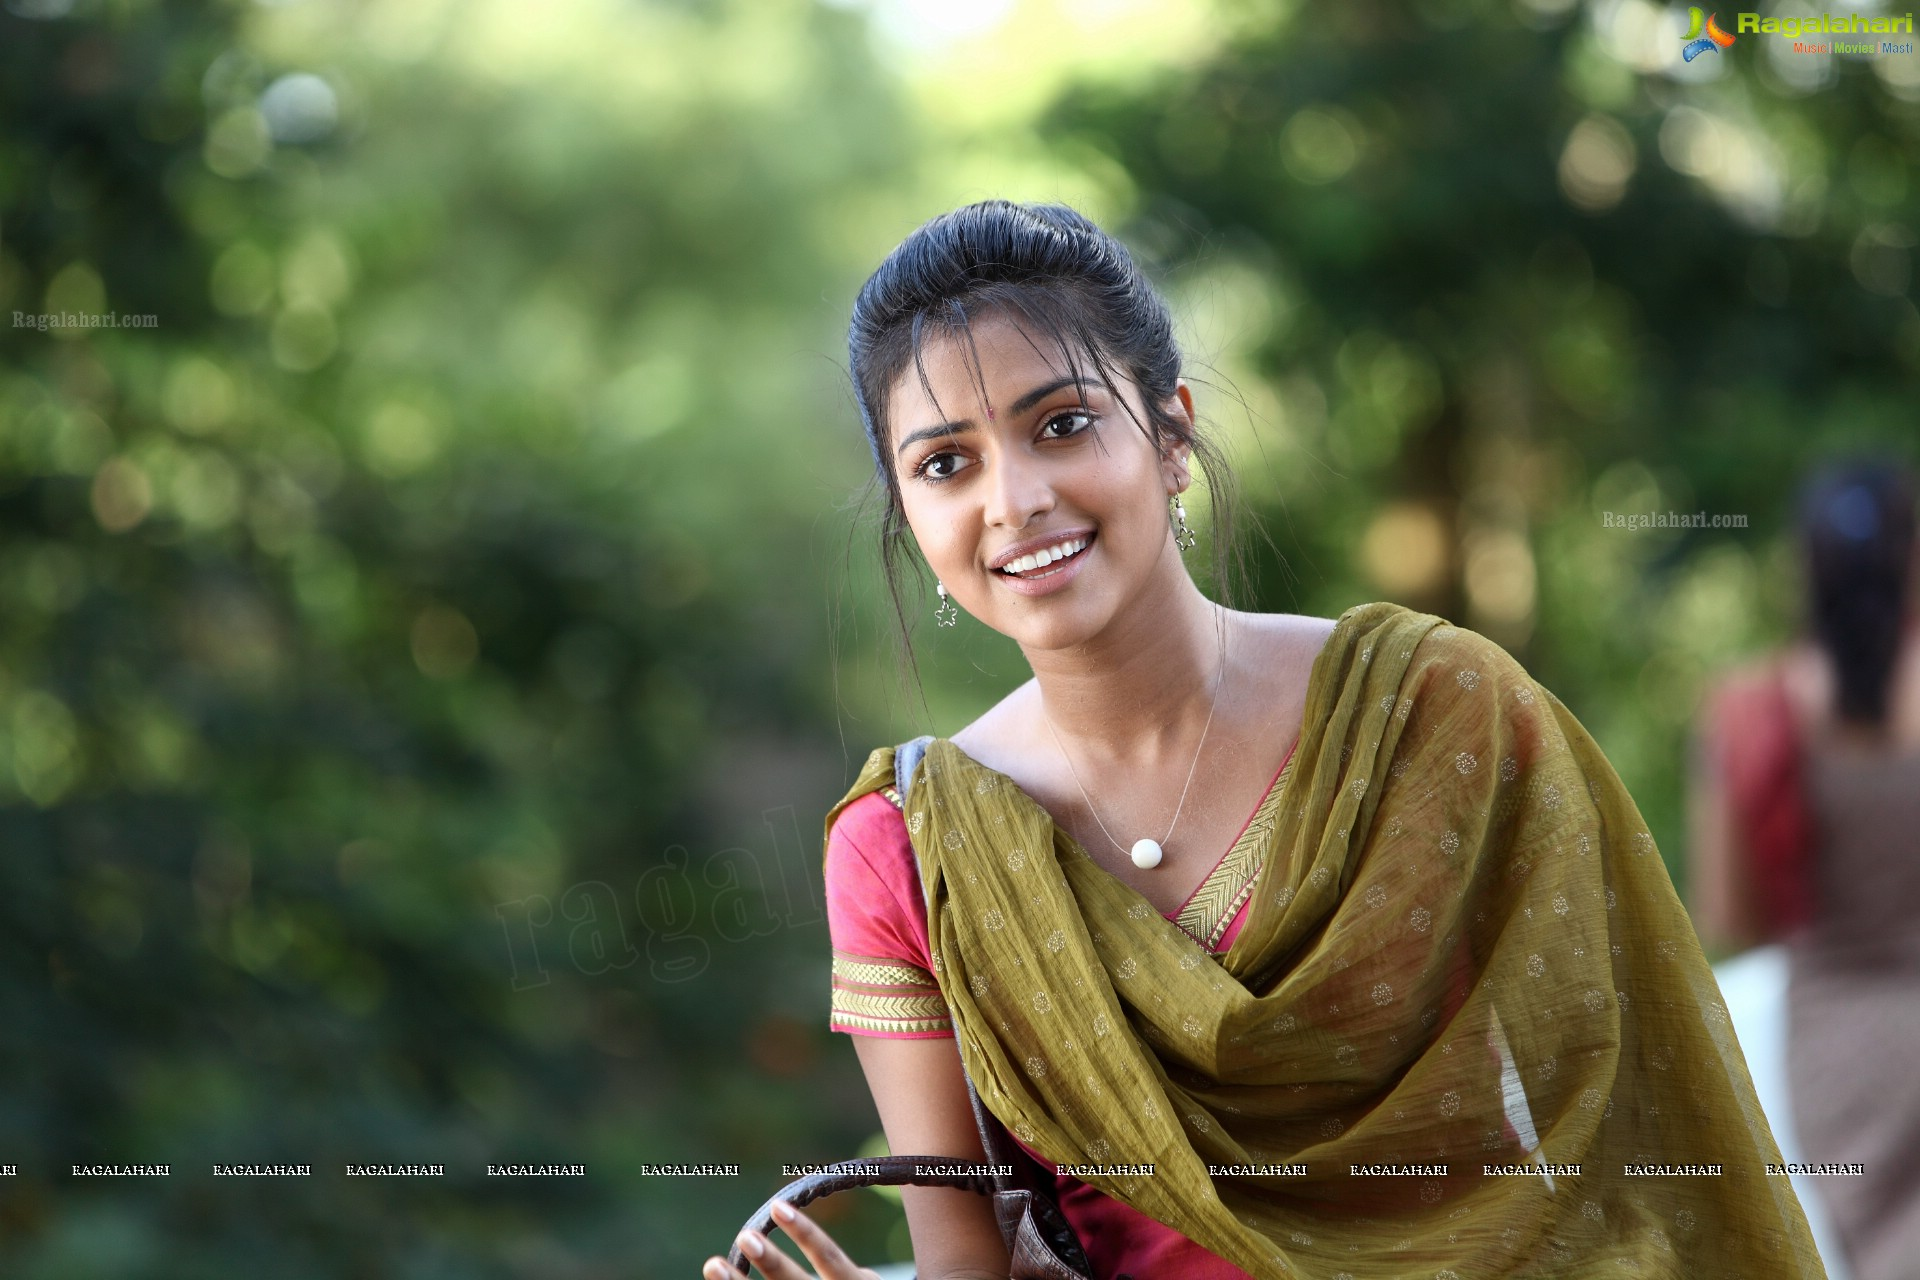 Amala Paul HD wallpaper for download